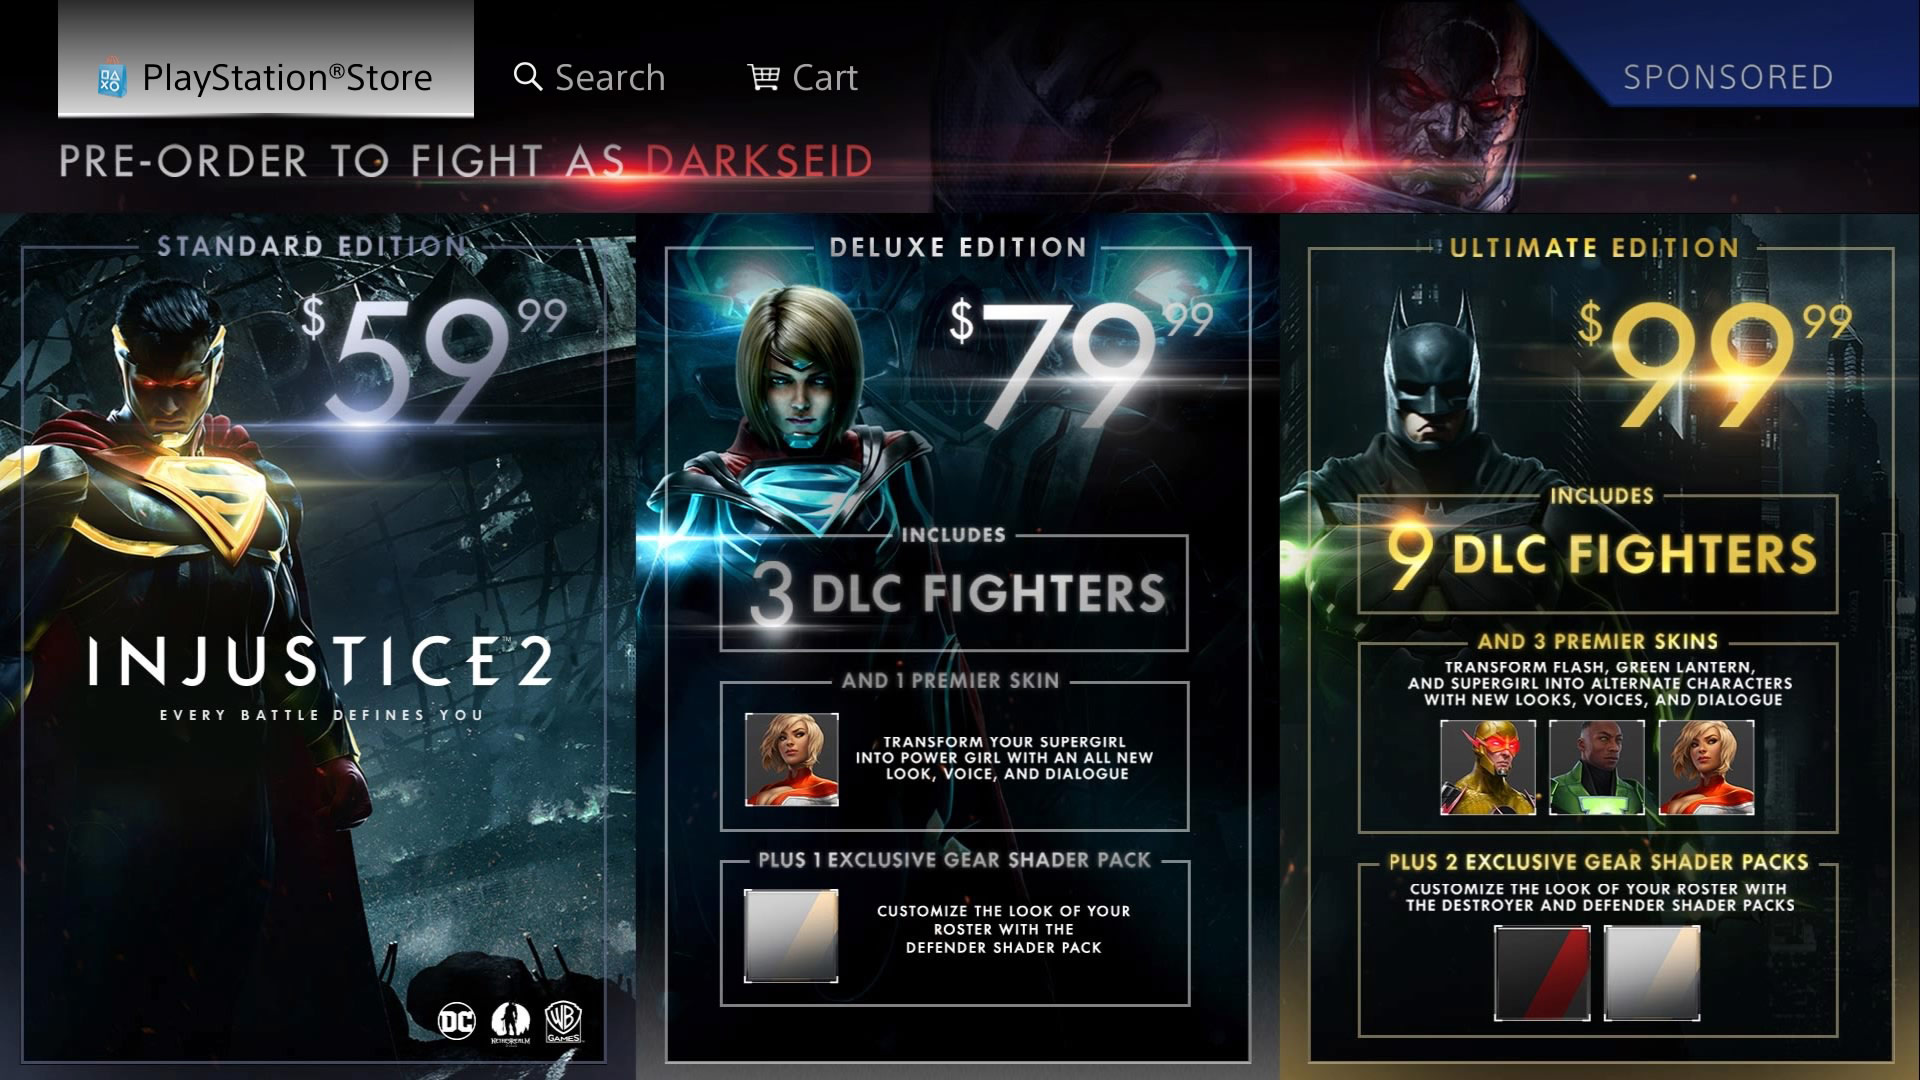 Injustice 2's purchase options 1 out of 1 image gallery